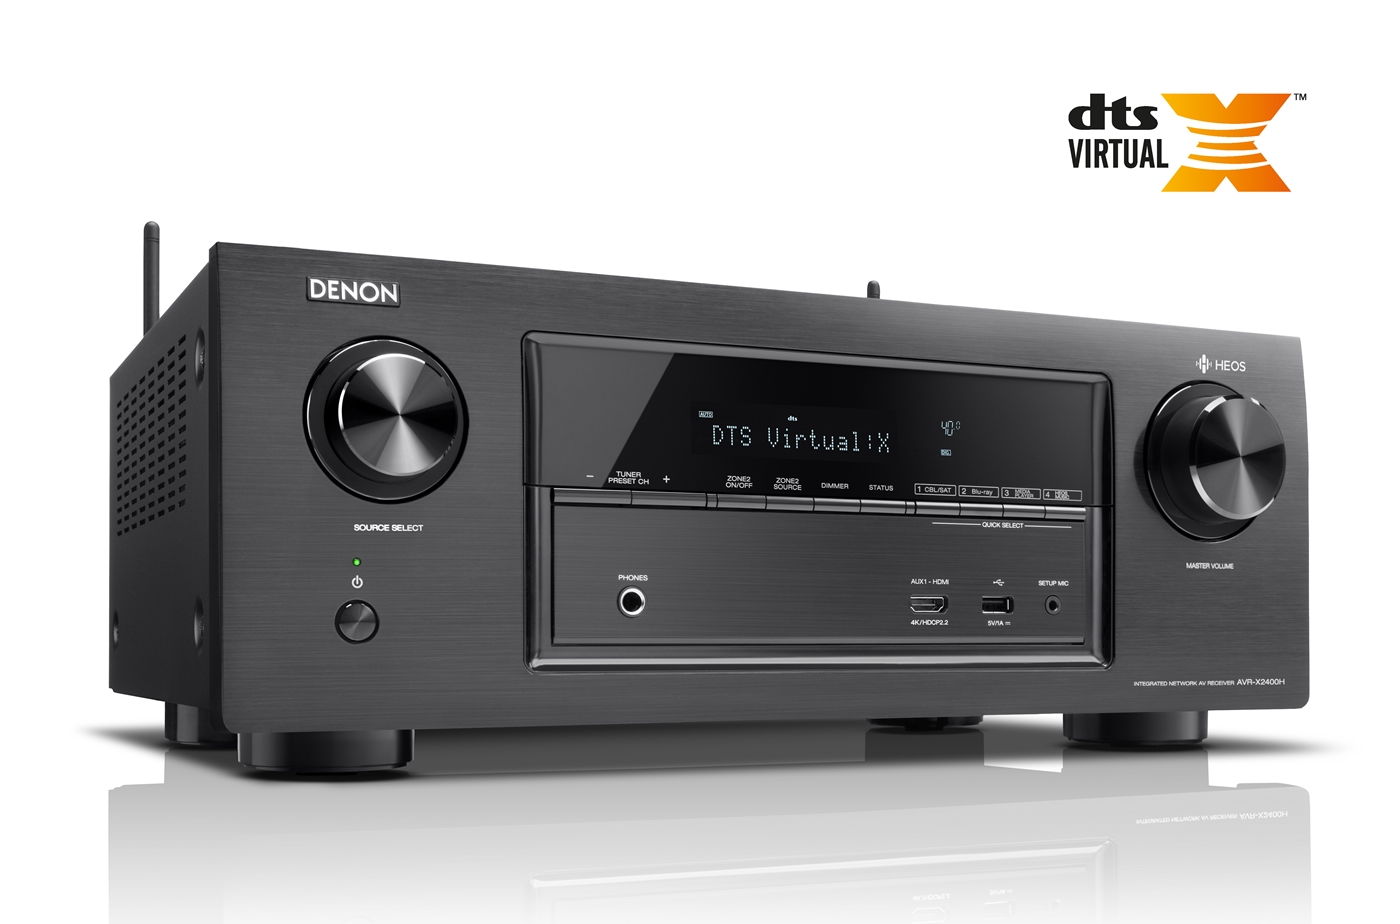 Denon Marantz DTS Virtual X 1